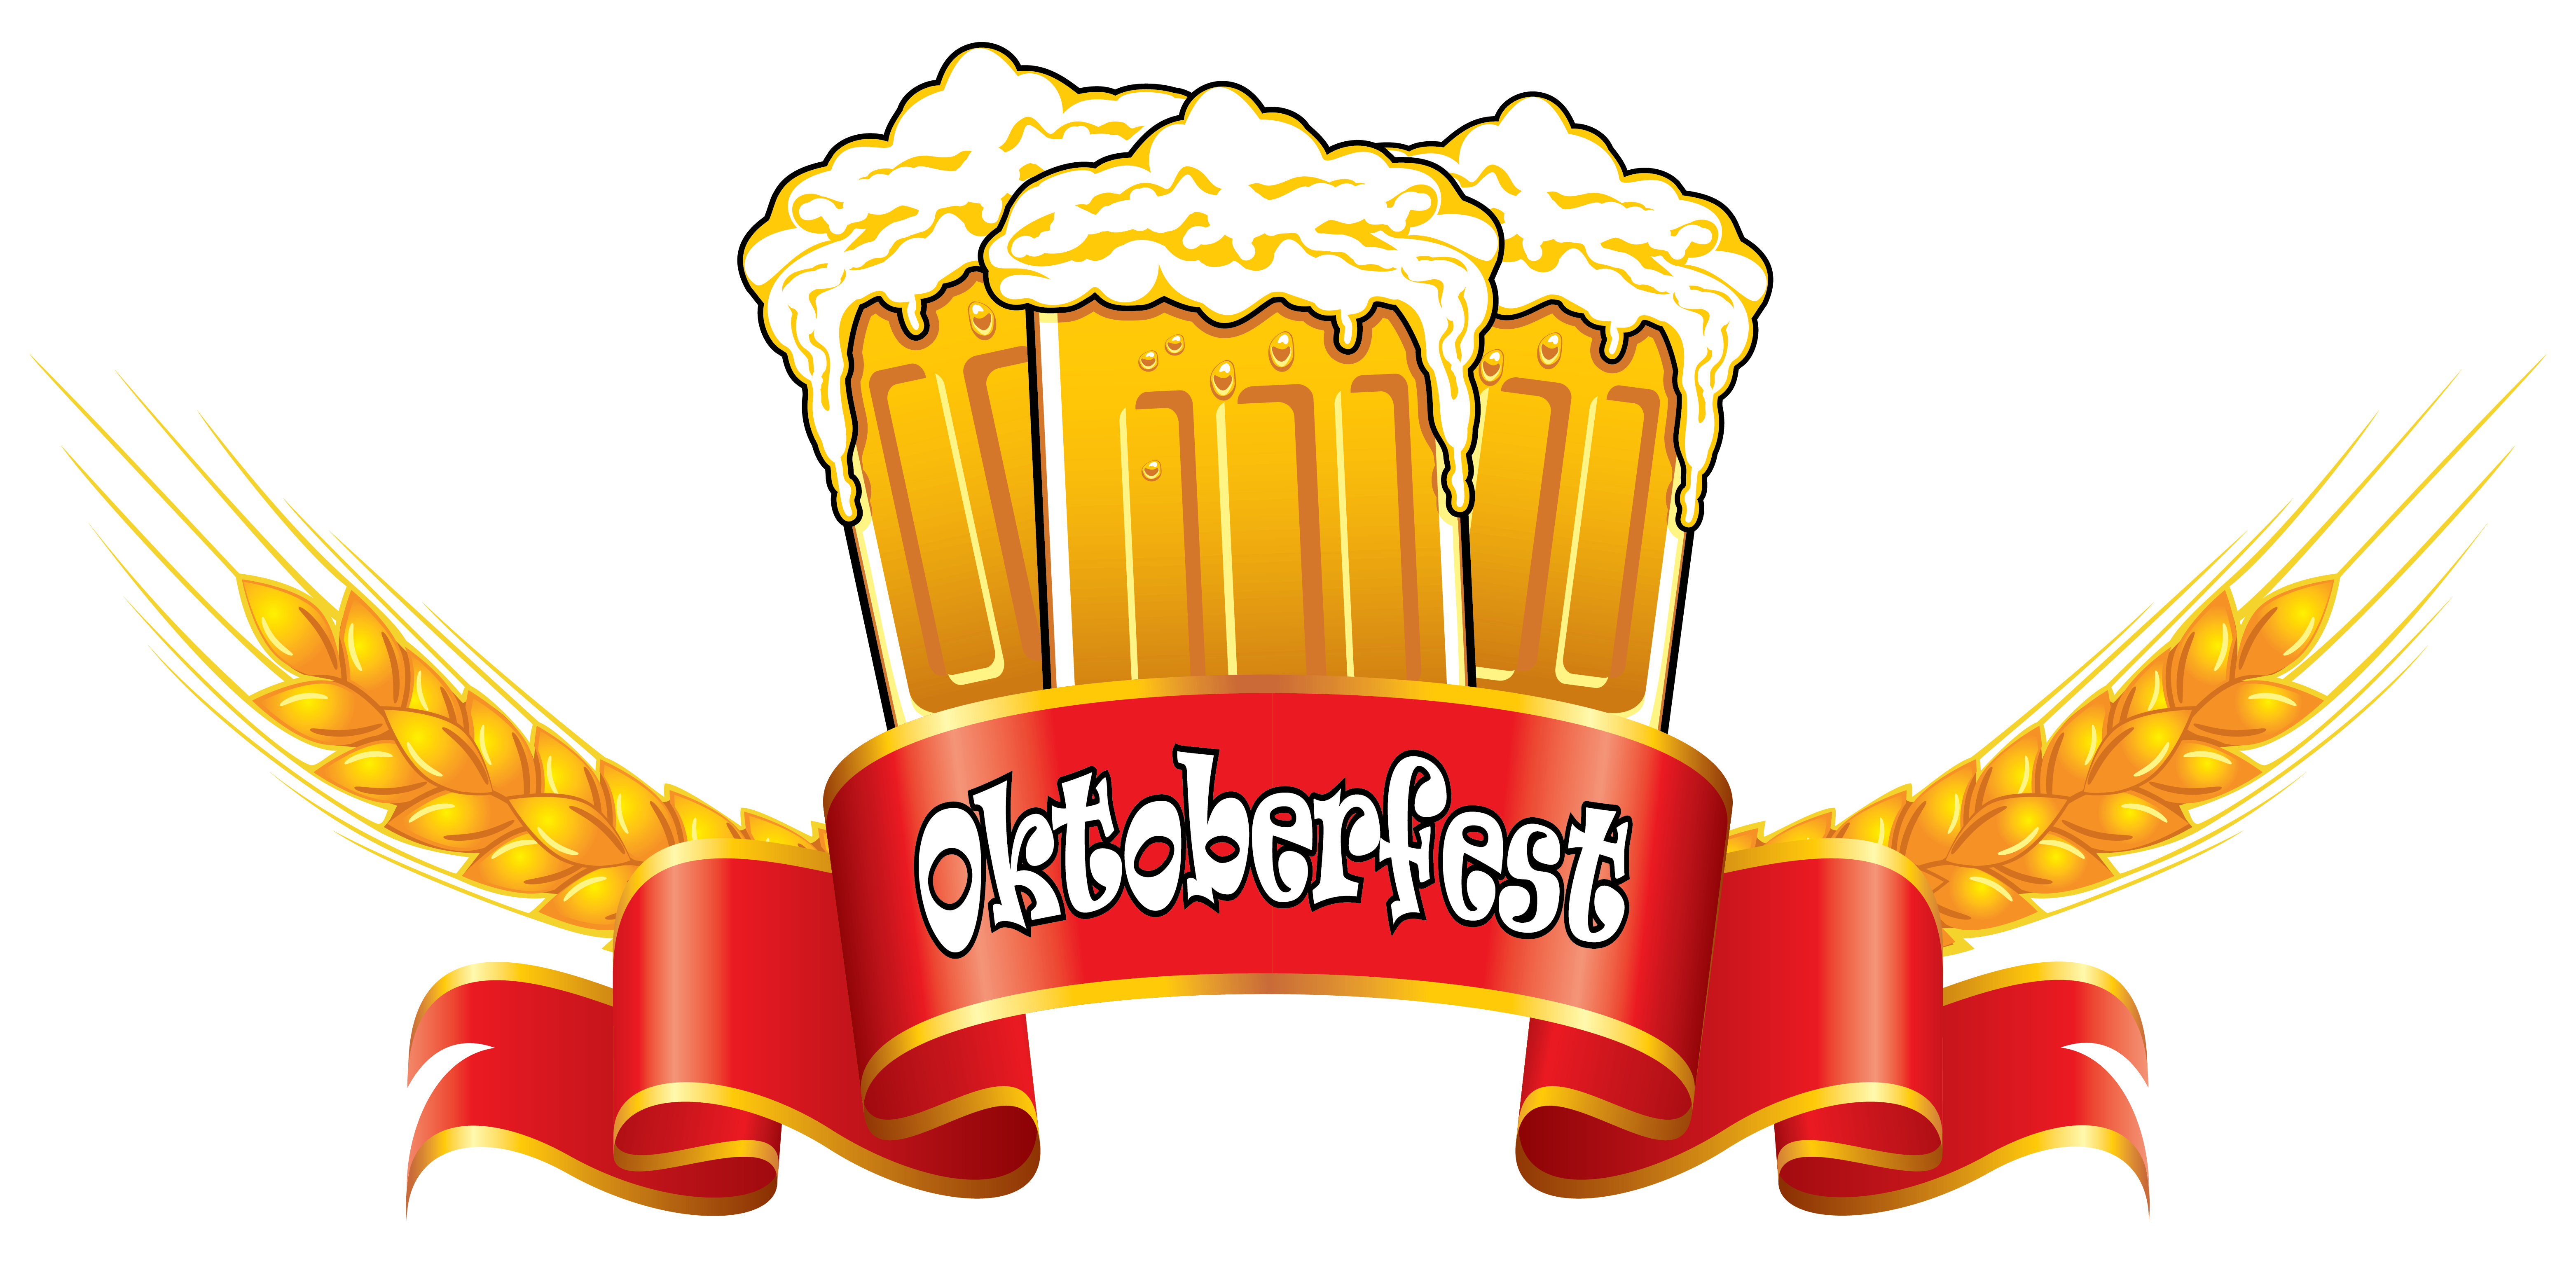 Wheat beer clipart #16